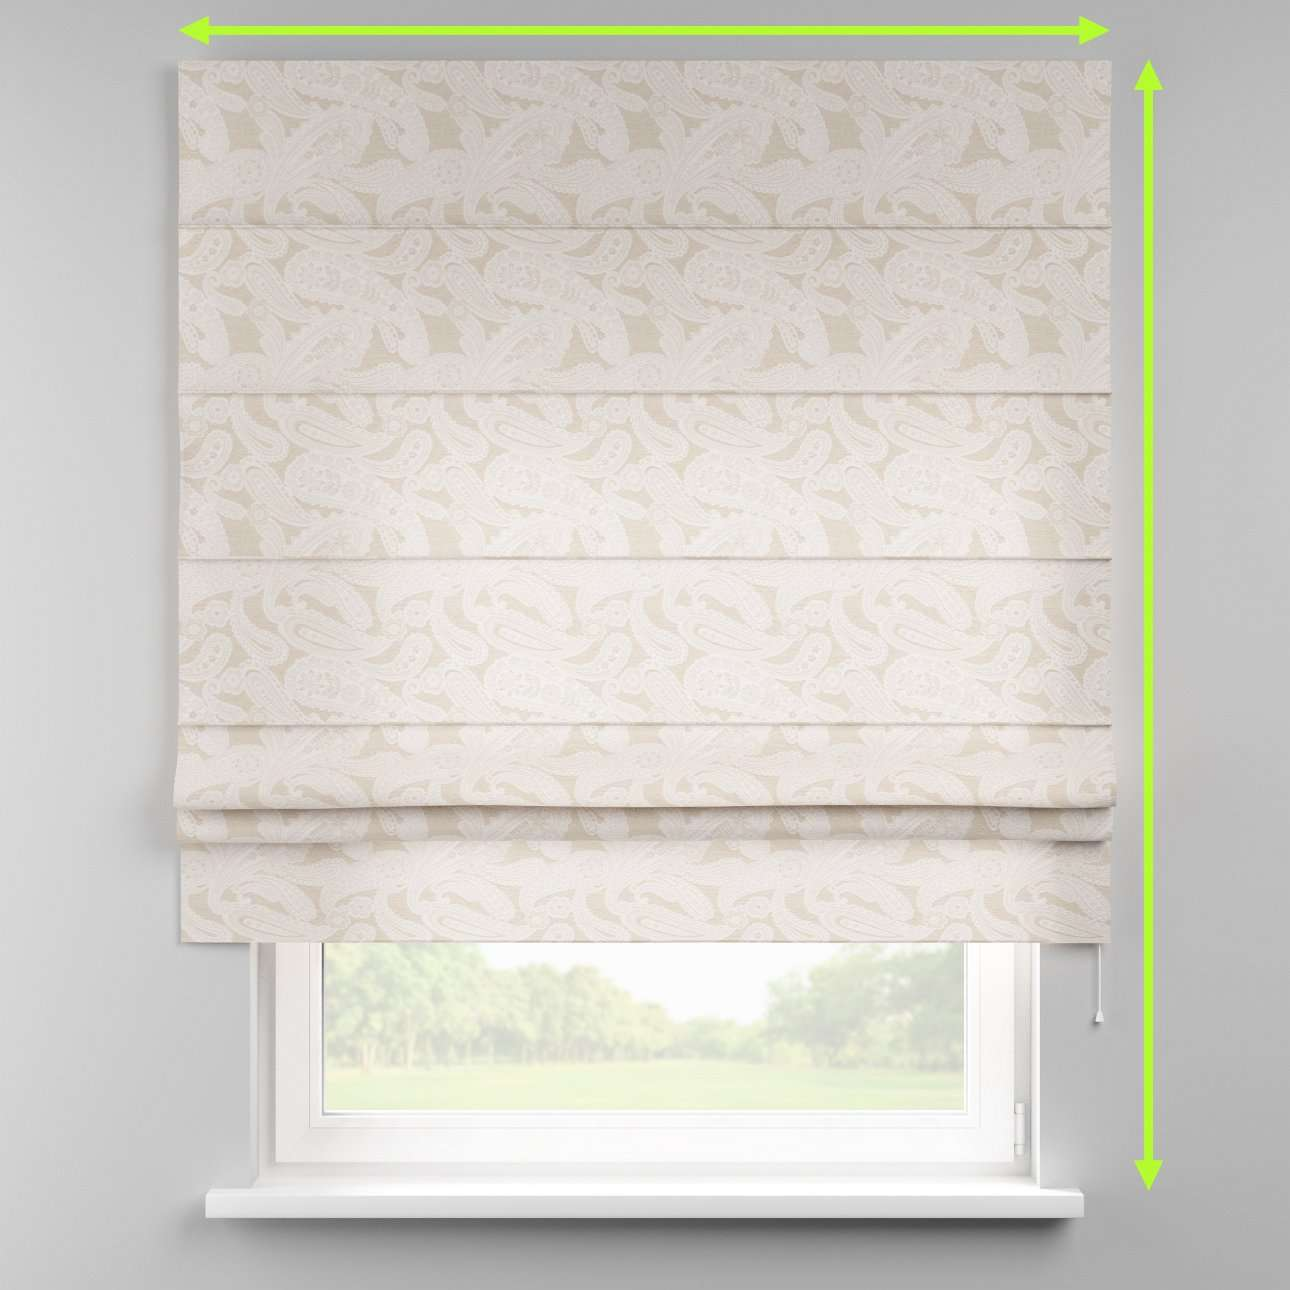 Padva roman blind  in collection Rustica, fabric: 138-10